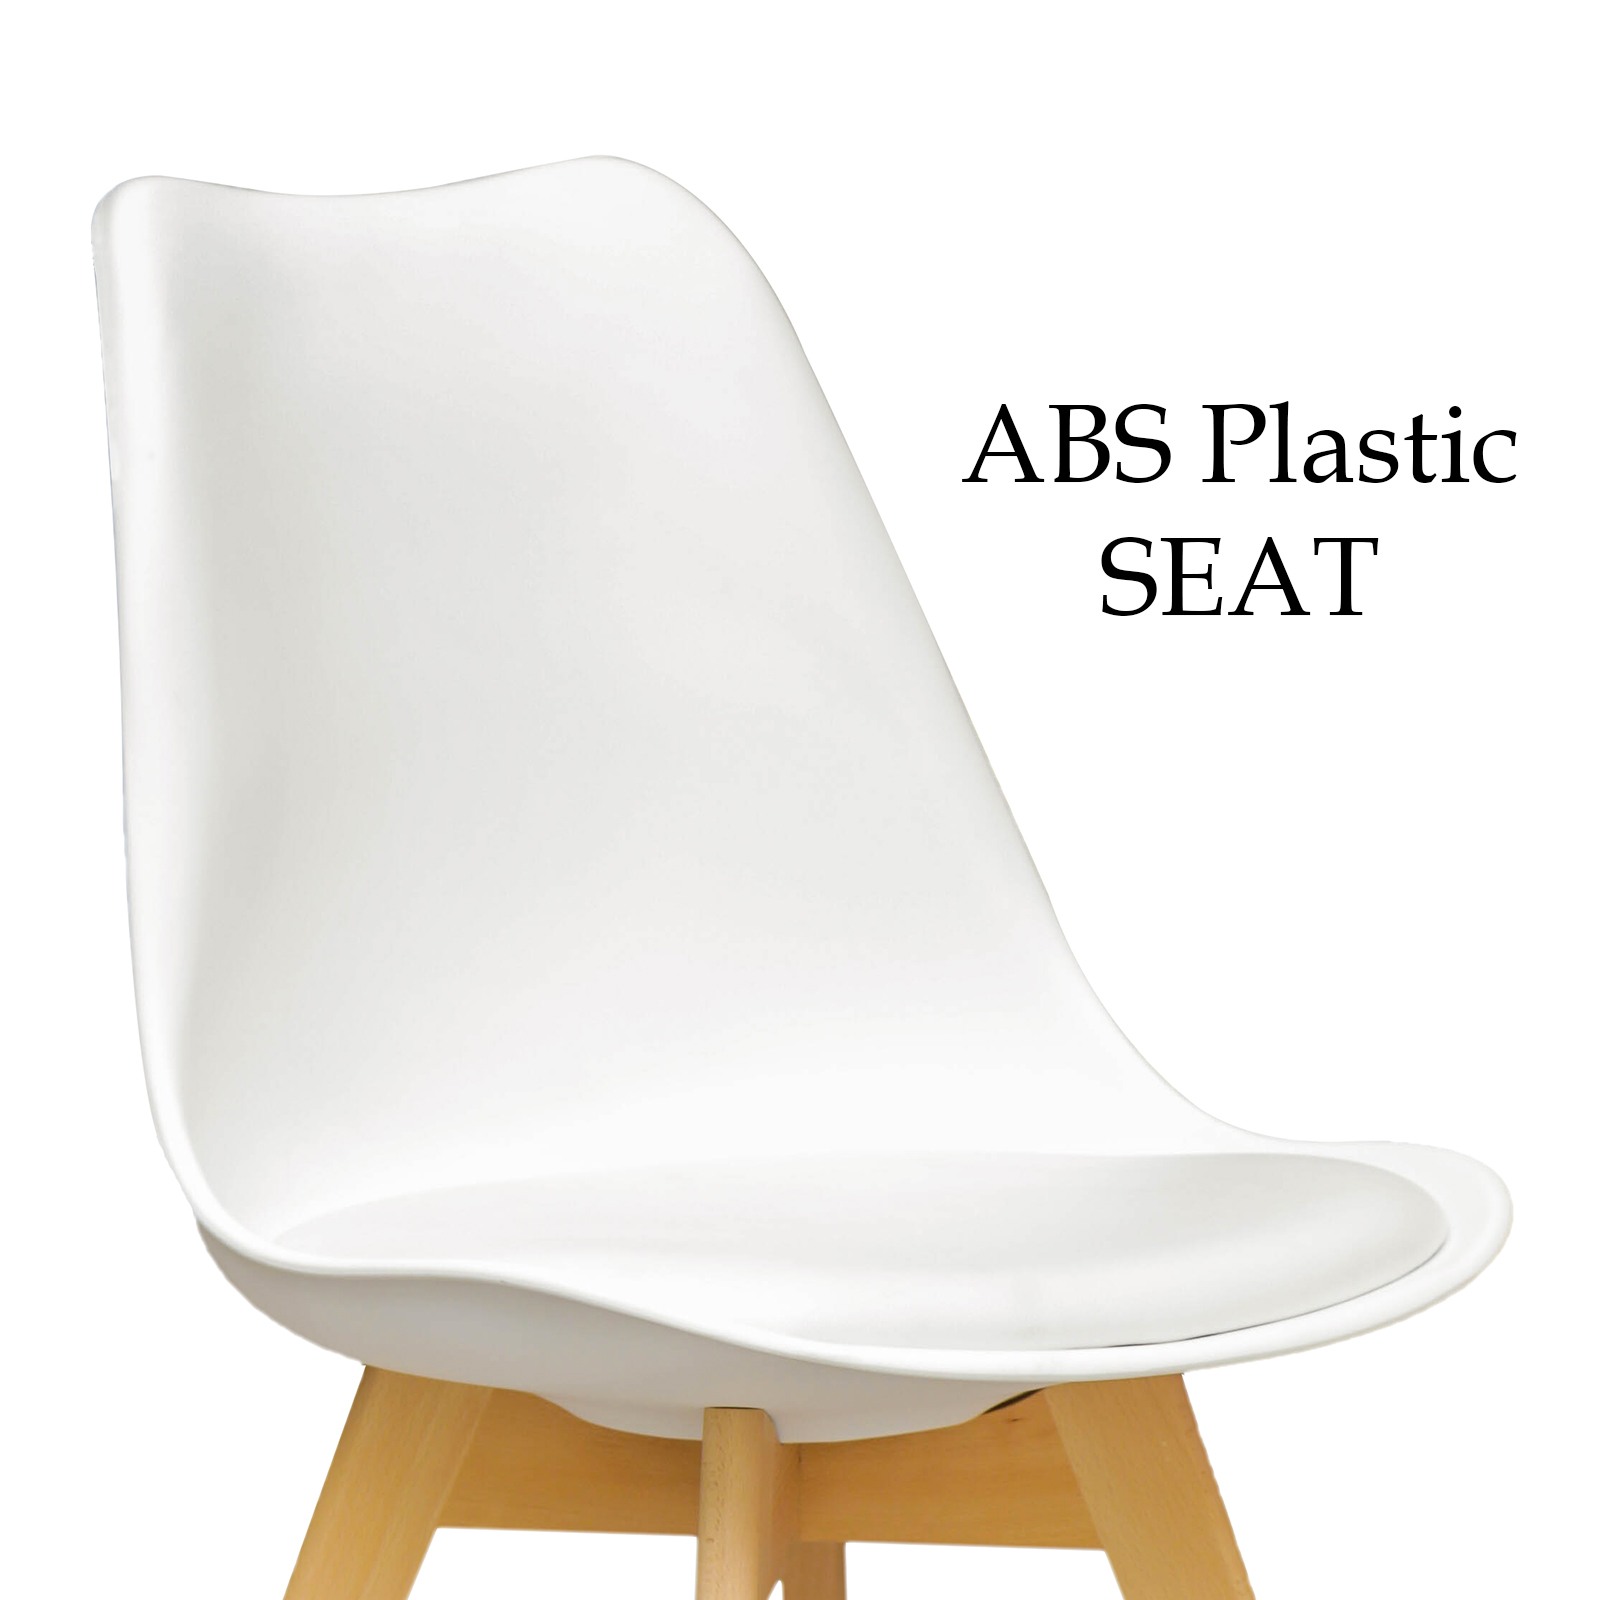 4 X Retro Replica Eames Sisly ABS Plastic CafeDining  : Sisly White dining Chair 03 from www.ebay.com.au size 1600 x 1600 jpeg 328kB